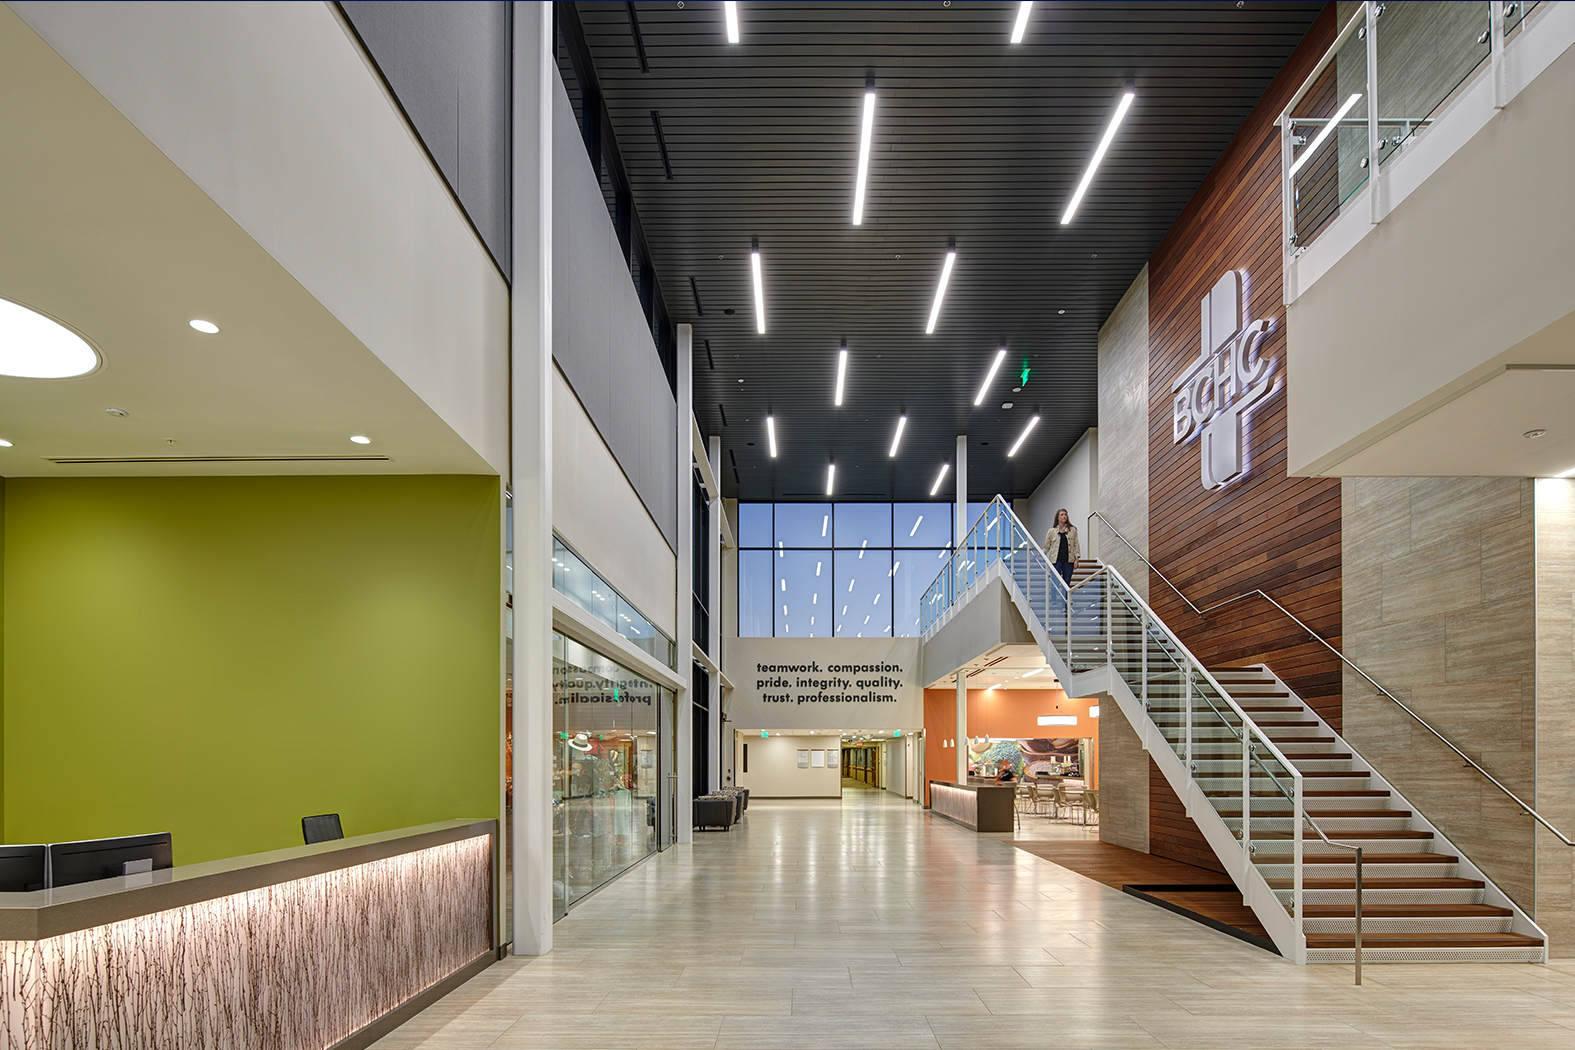 The incorporation of a new and easily accessible lobby allows guests from the community to feel welcomed. The environment emphasizes natural daylight, which promotes healing and nature.